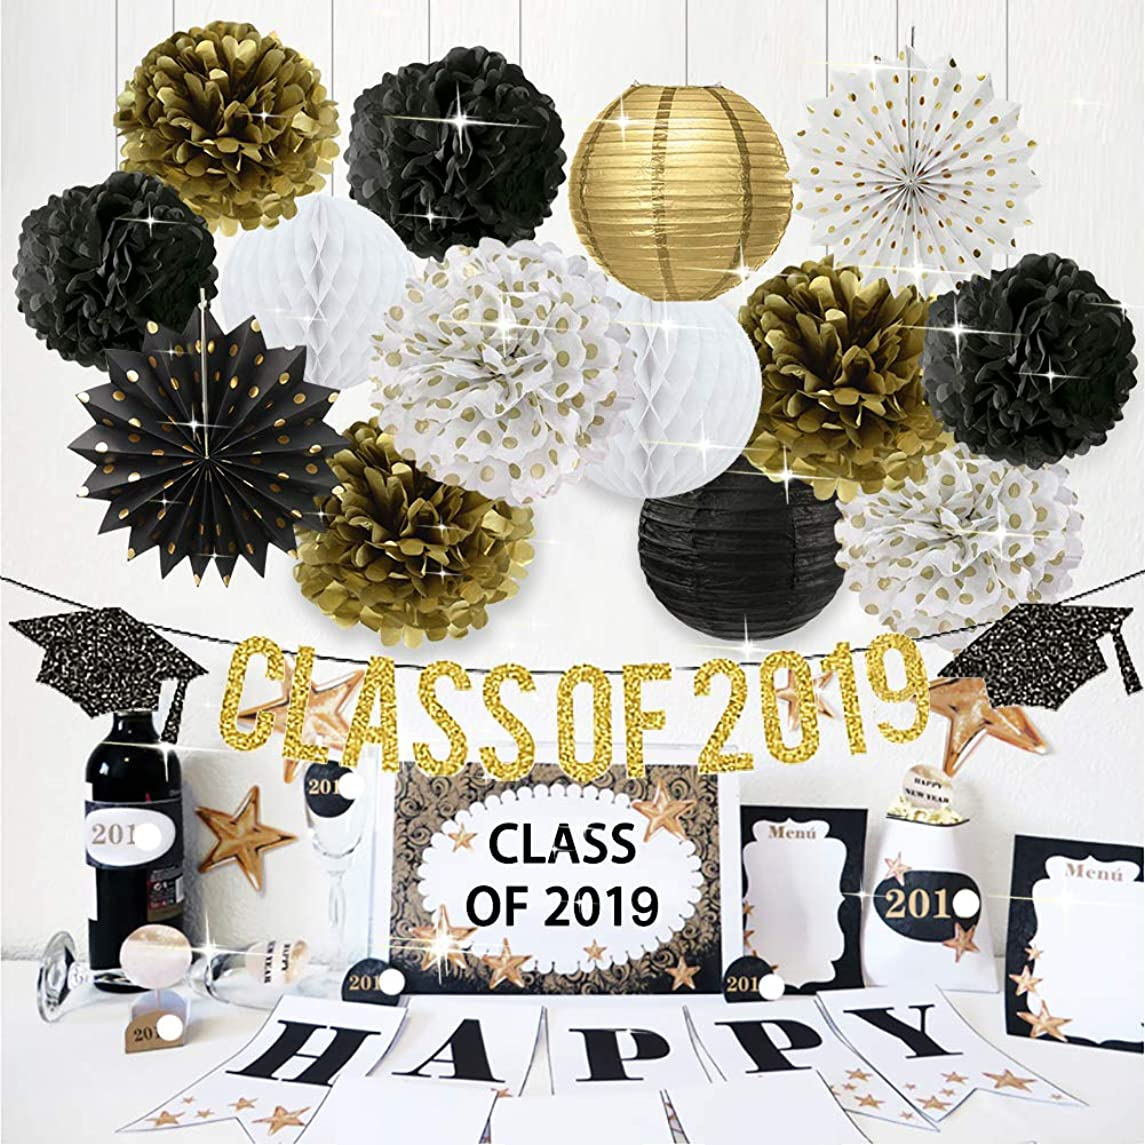 2019 Graduation Party Decorations Class of 2019 Graduation Banner Tissue Paper Flowers Pom Poms Paper Lanterns Hanging Paper Fans for College Grad Party and High School Graduation Party Supplies 2019